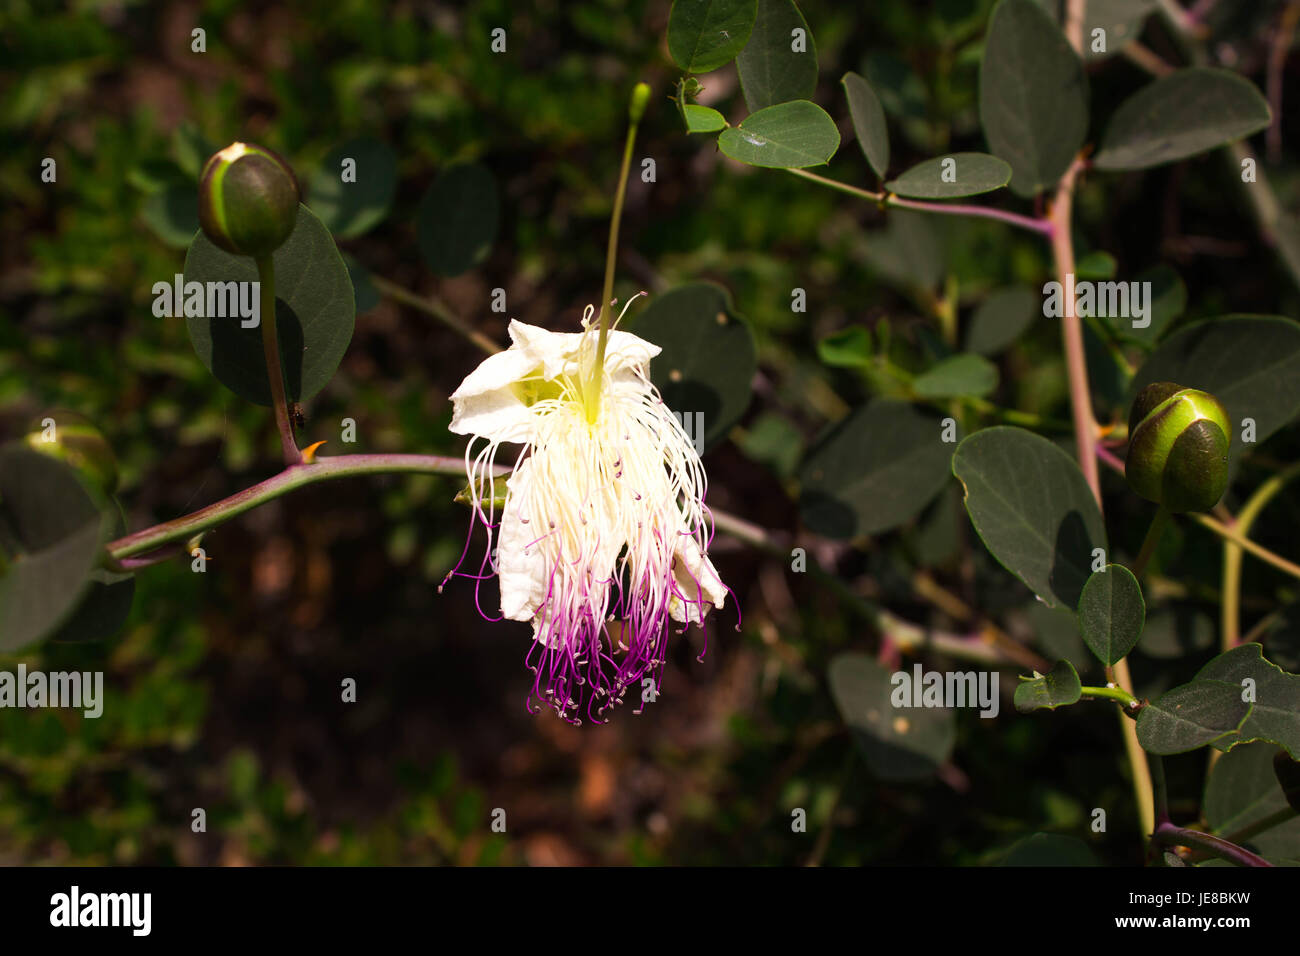 Wild plants and flowers makro photography - Stock Image